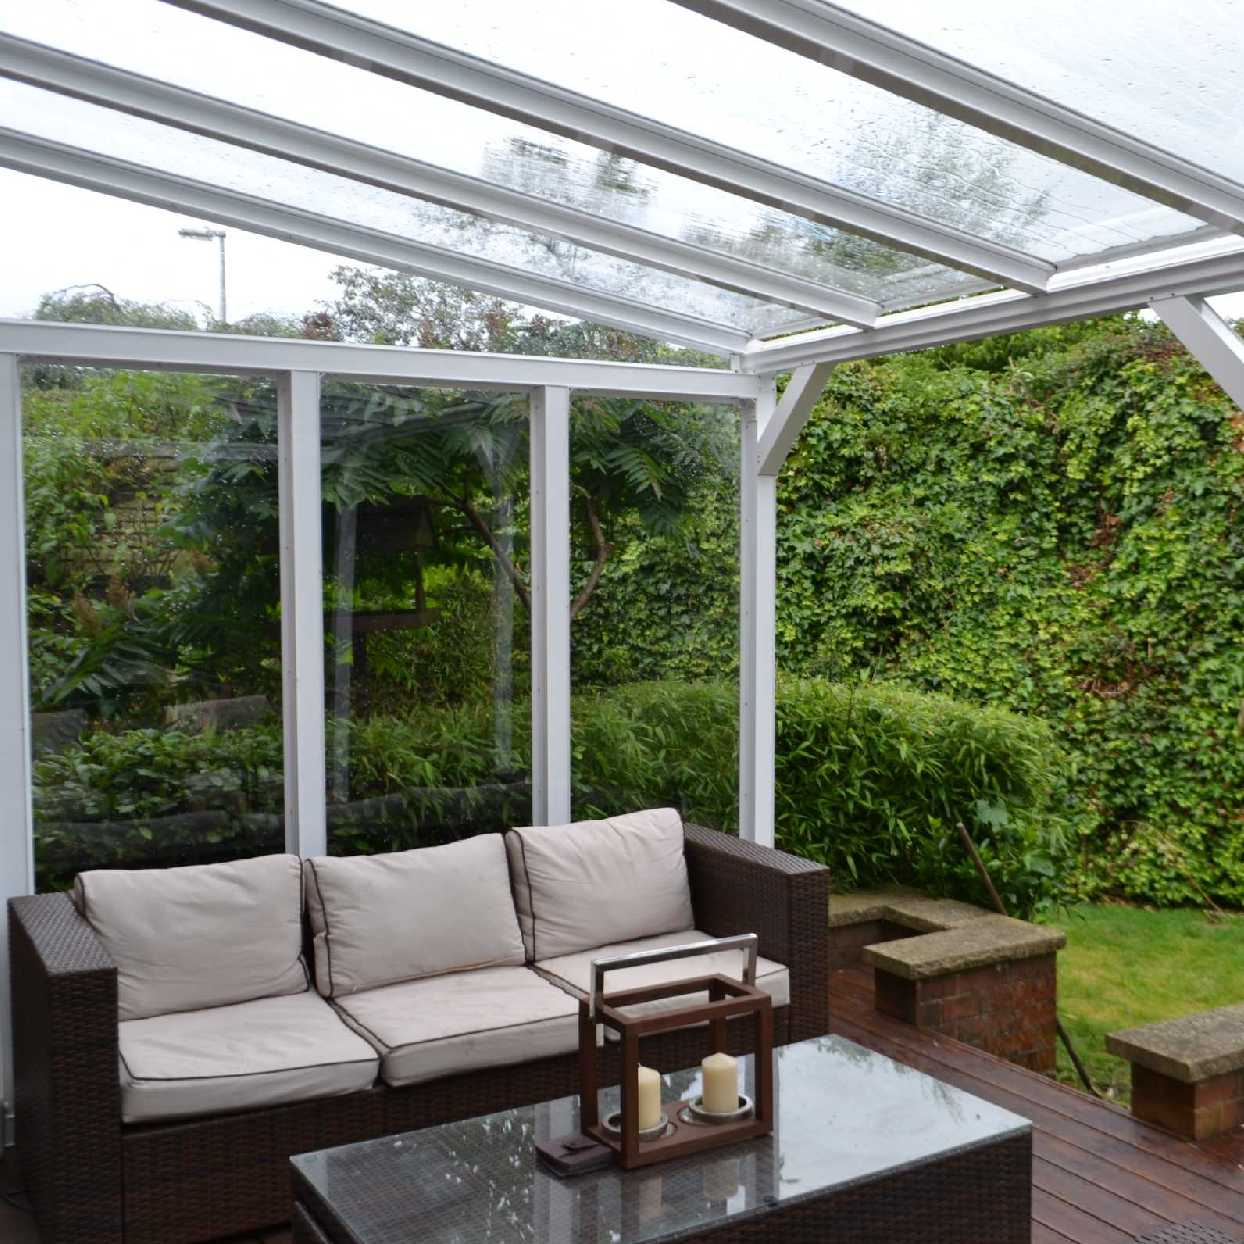 Great selection of Omega Smart White Lean-To Canopy with 16mm Polycarbonate Glazing - 6.3m (W) x 4.0m (P), (4) Supporting Posts